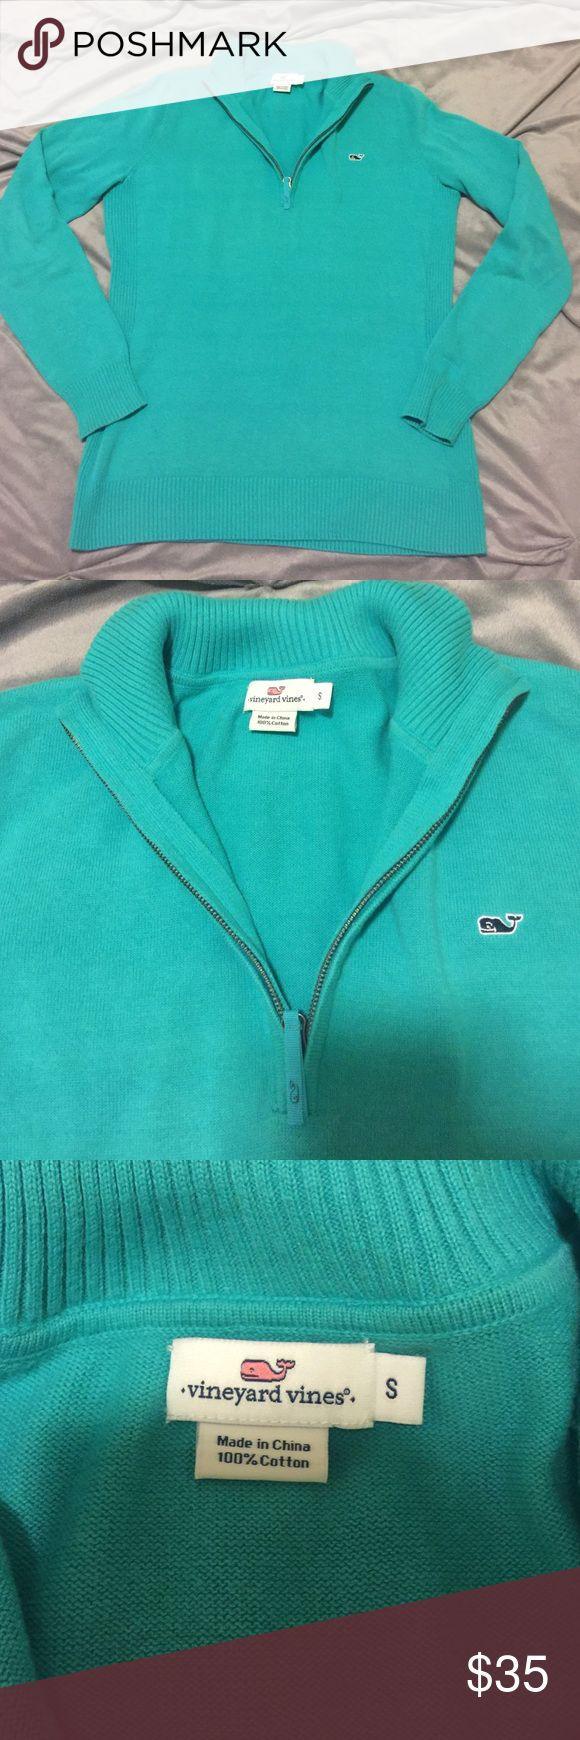 🎉Vineyard Vines pullover🎉 Super cute teal vineyard vines pullover in great condition. Pre-loved. Very little signs of wear. There is a tiny hole on the cuff of the right sleeve please look at the last picture for reference. I am pricing this item well to sell quickly! Vineyard Vines Sweaters